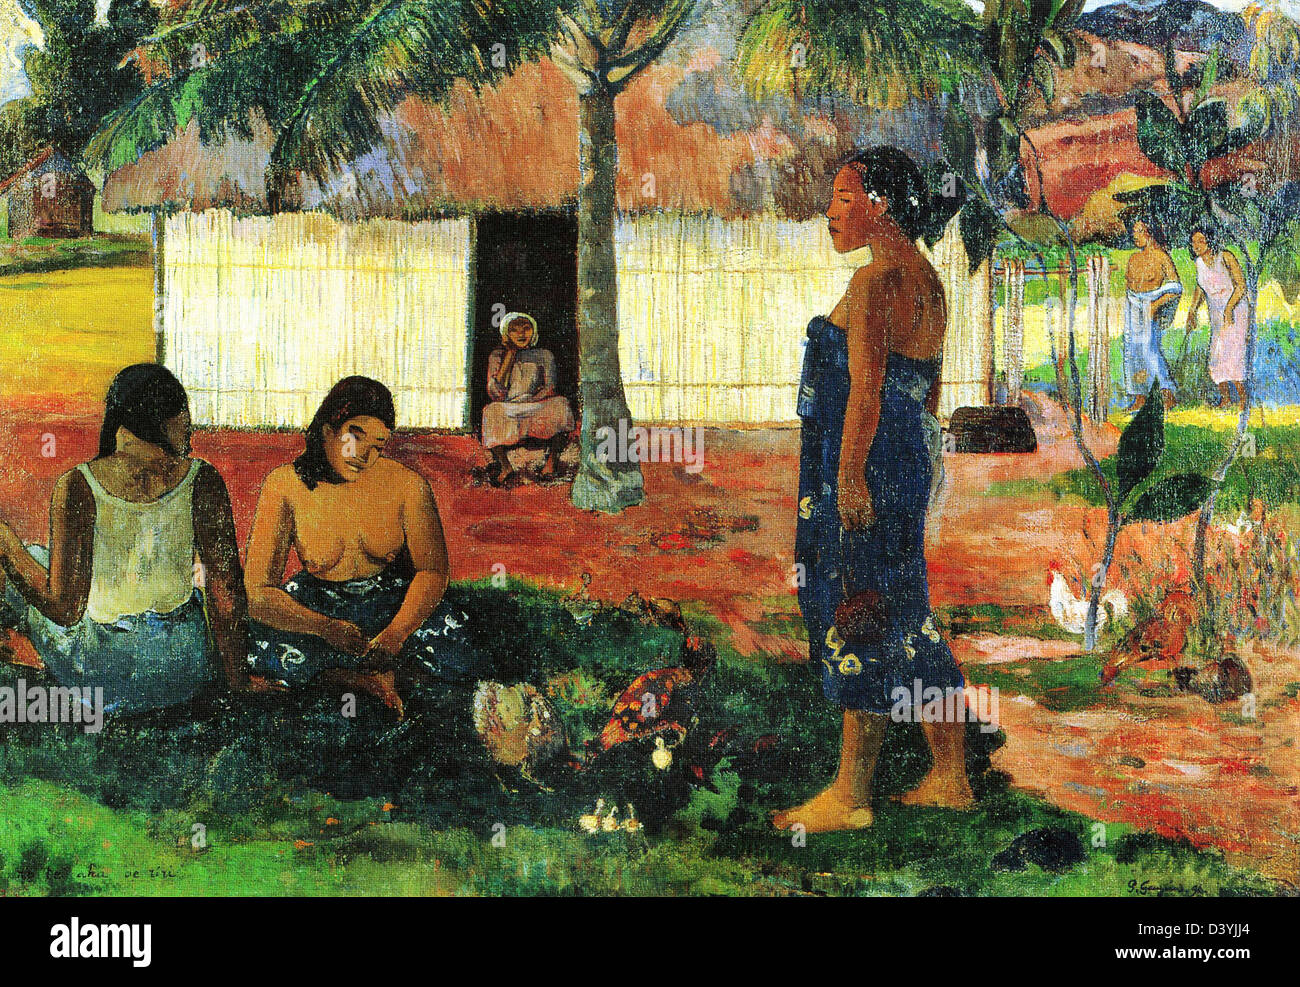 Paul Gauguin, Why Are You Angry? 1896 Oil on canvas. Art Institute of Chicago, Chicago, IL - Stock Image